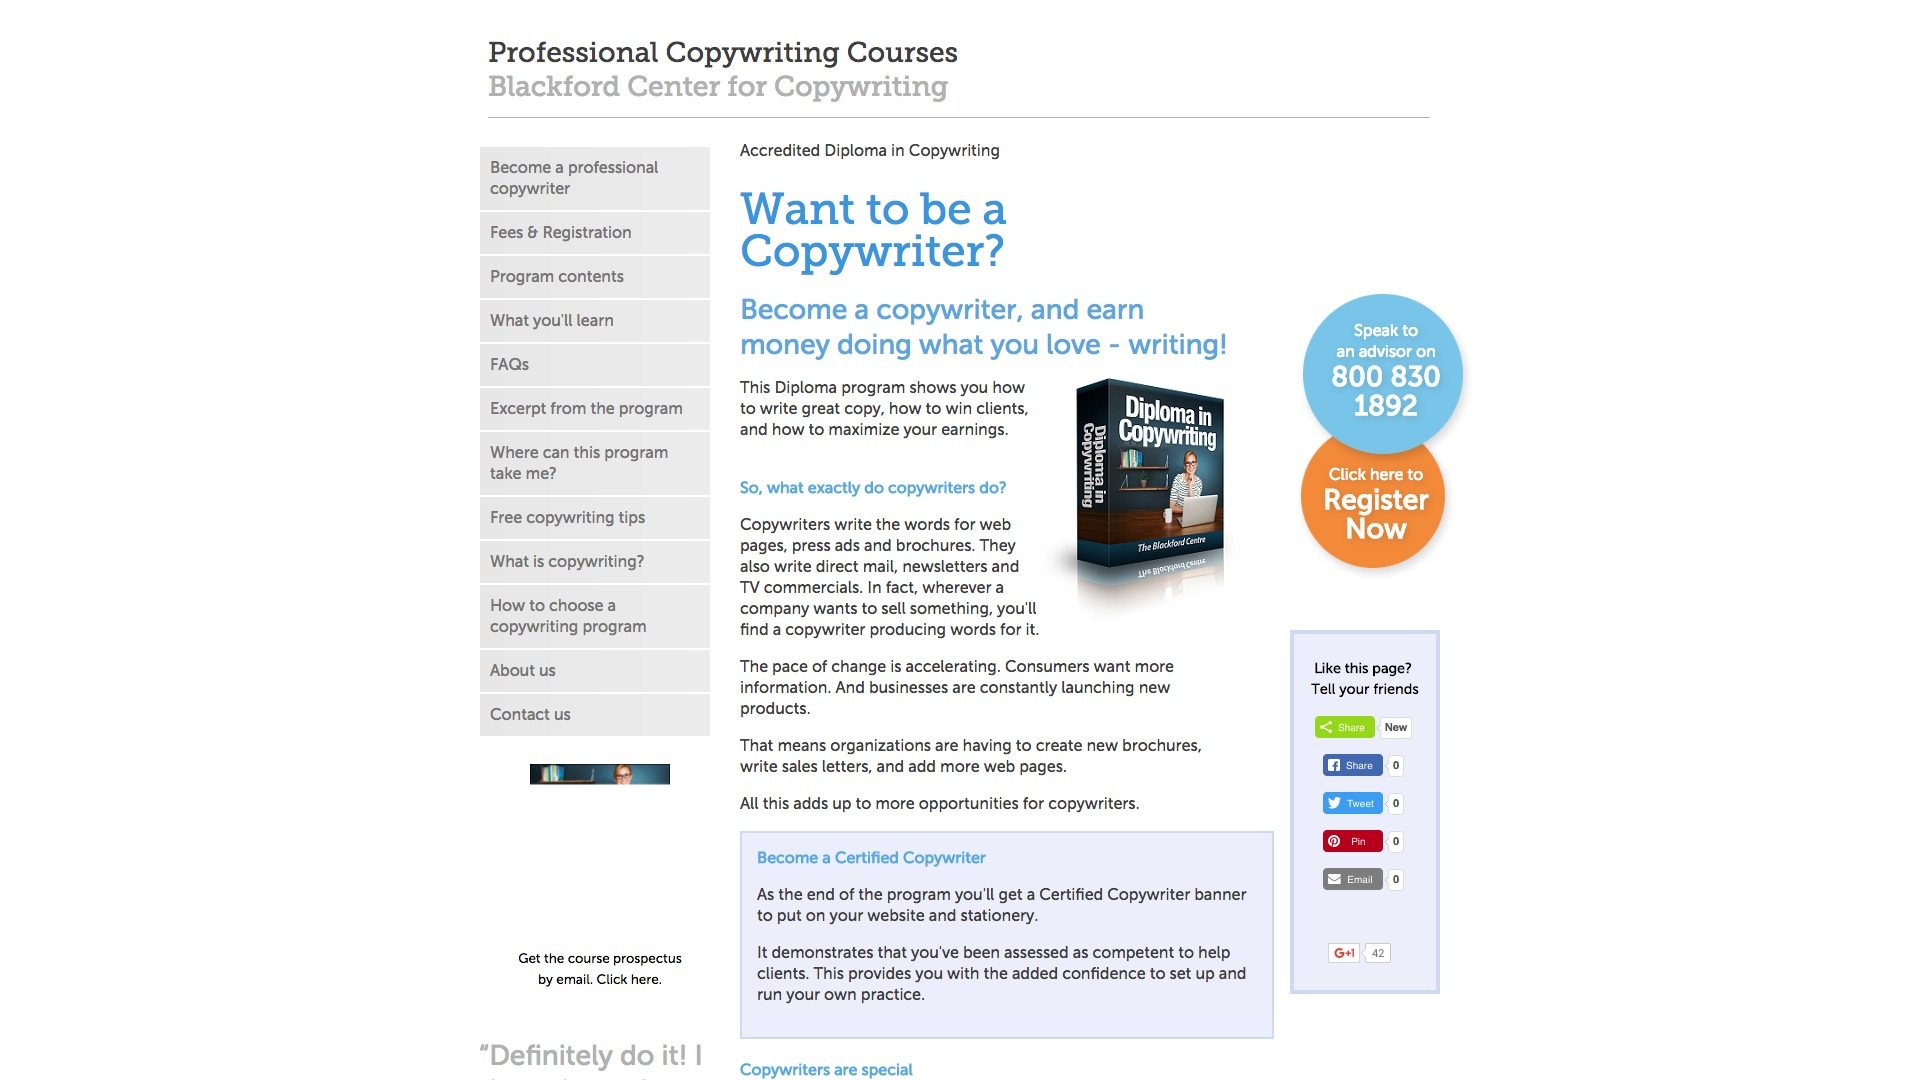 $872 – $992 for full online course and printed materials